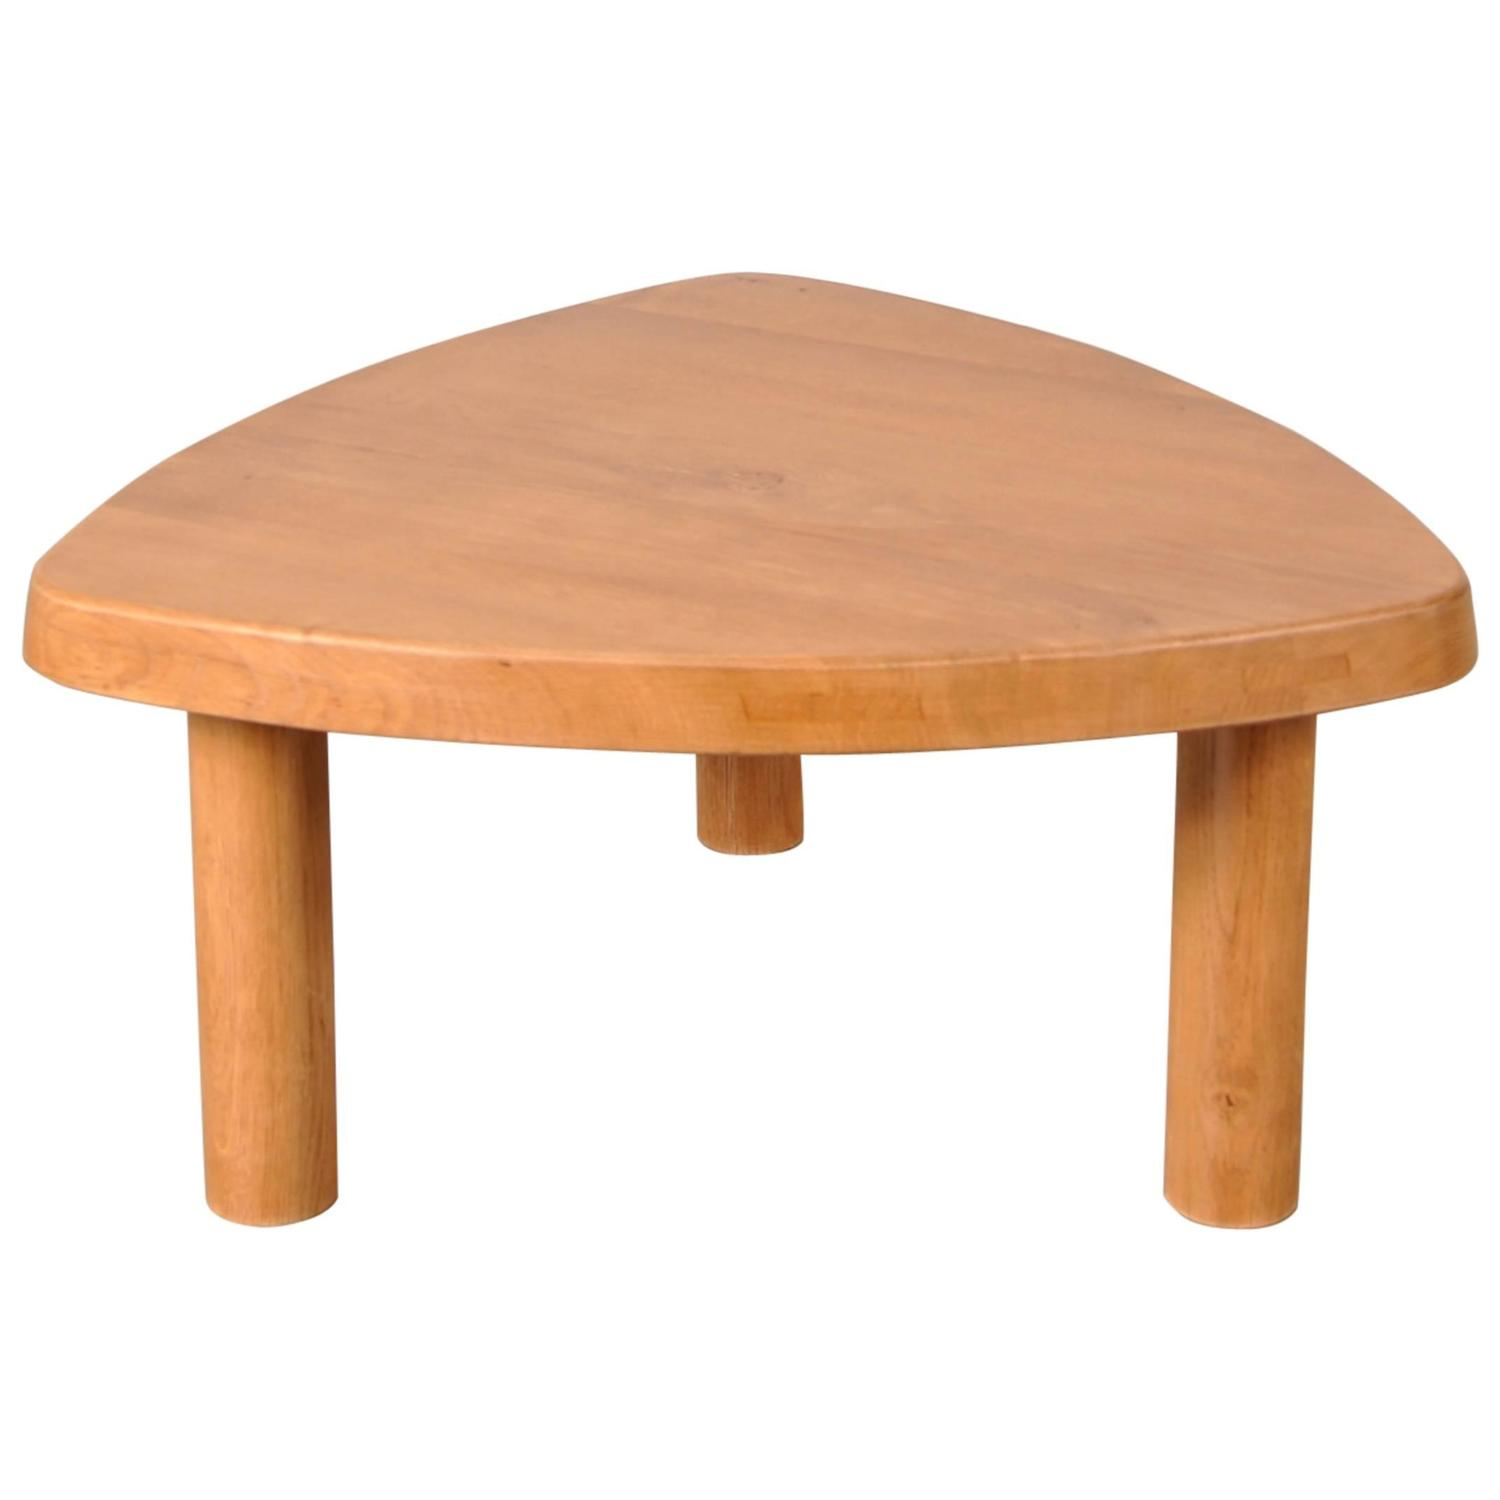 Coffee table by charlotte perriand france circa 1950 for sale at 1stdibs - Table charlotte perriand ...